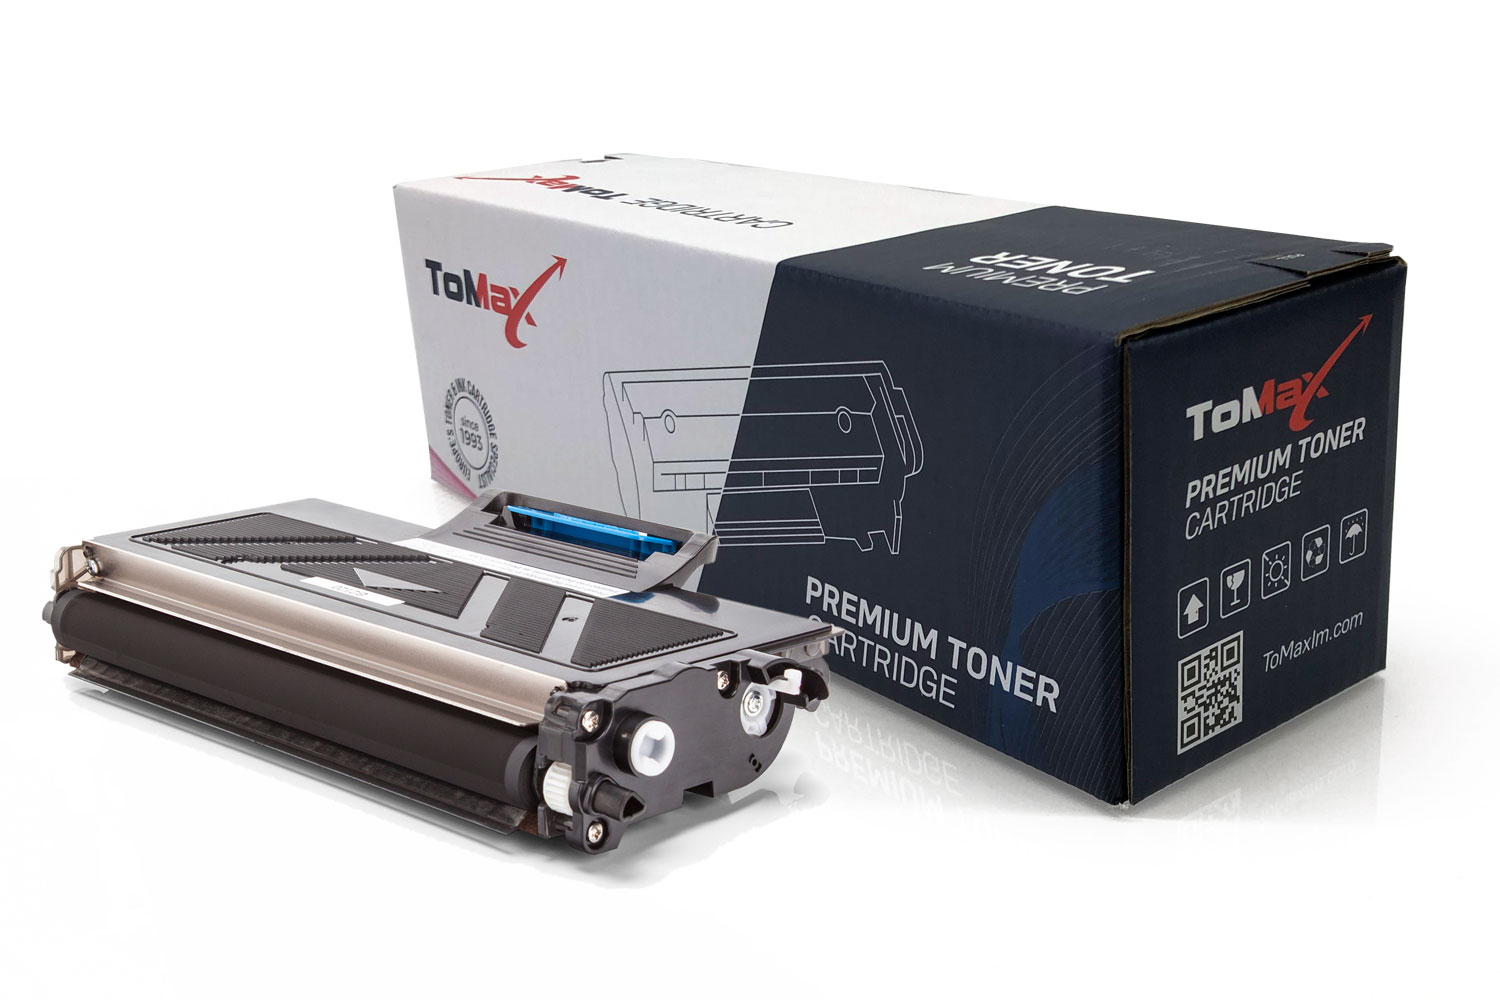 ToMax Premium Ink Cartridge replaces HP C9352AE / 22 XXL Color